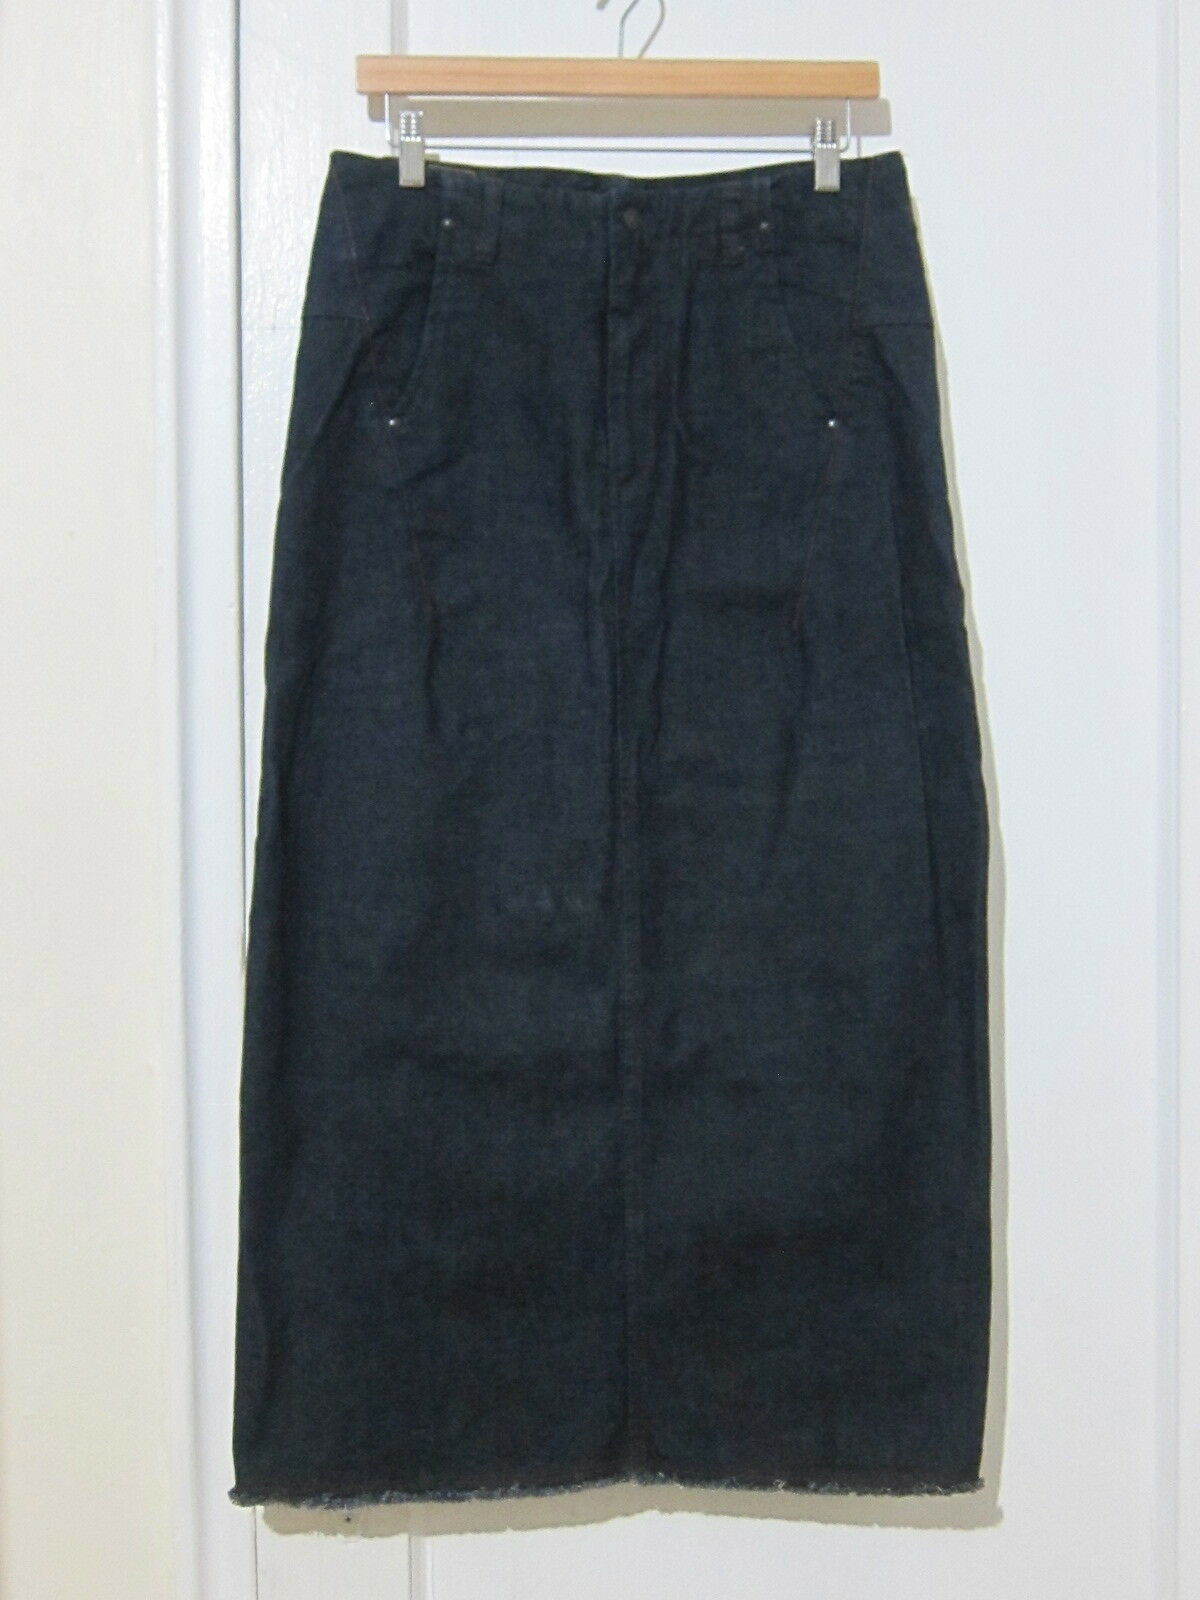 Marithe Francois Girbaud Ruffled Dark bluee Denim Fringe Long Skirt Women's Sz 28